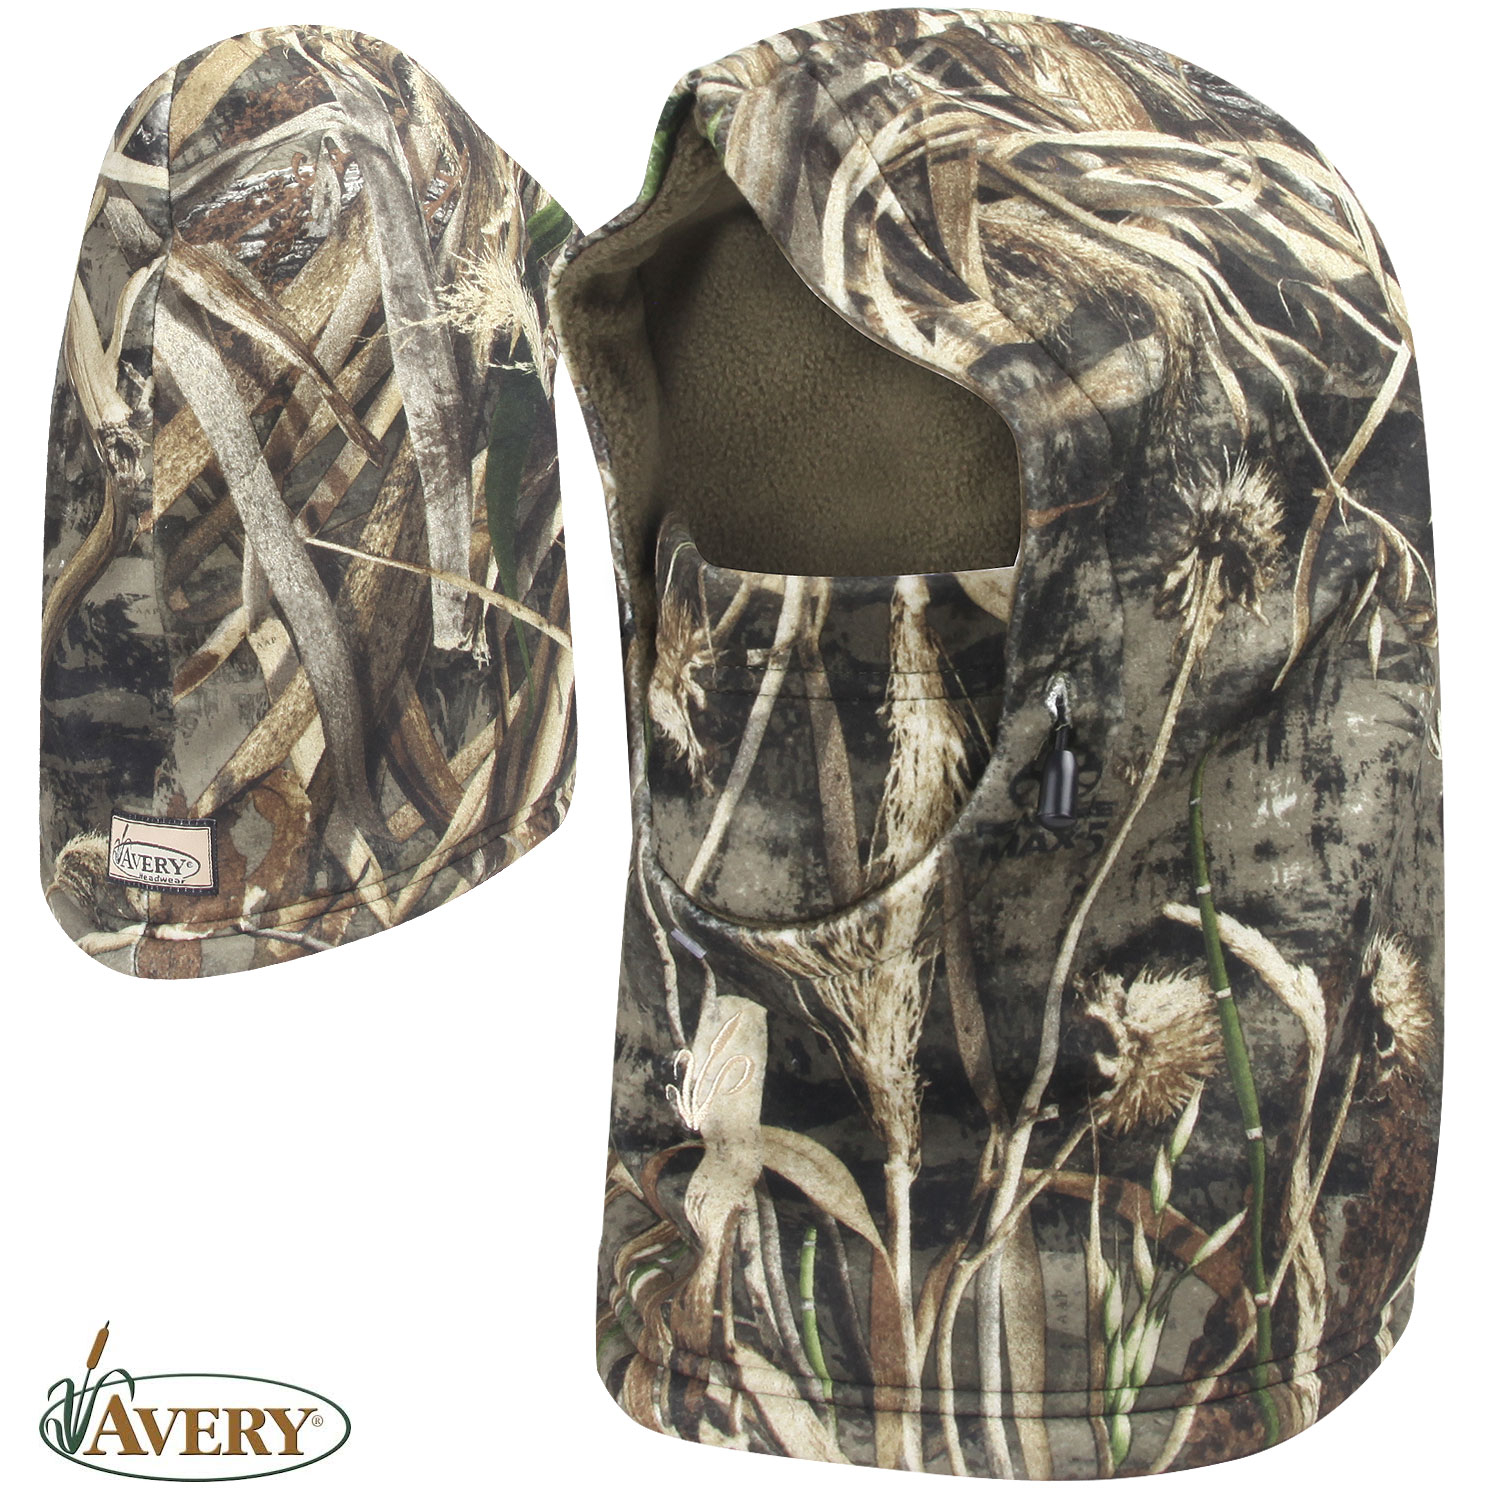 Avery Outdoors Fleece Yukon Hood RTMX 5